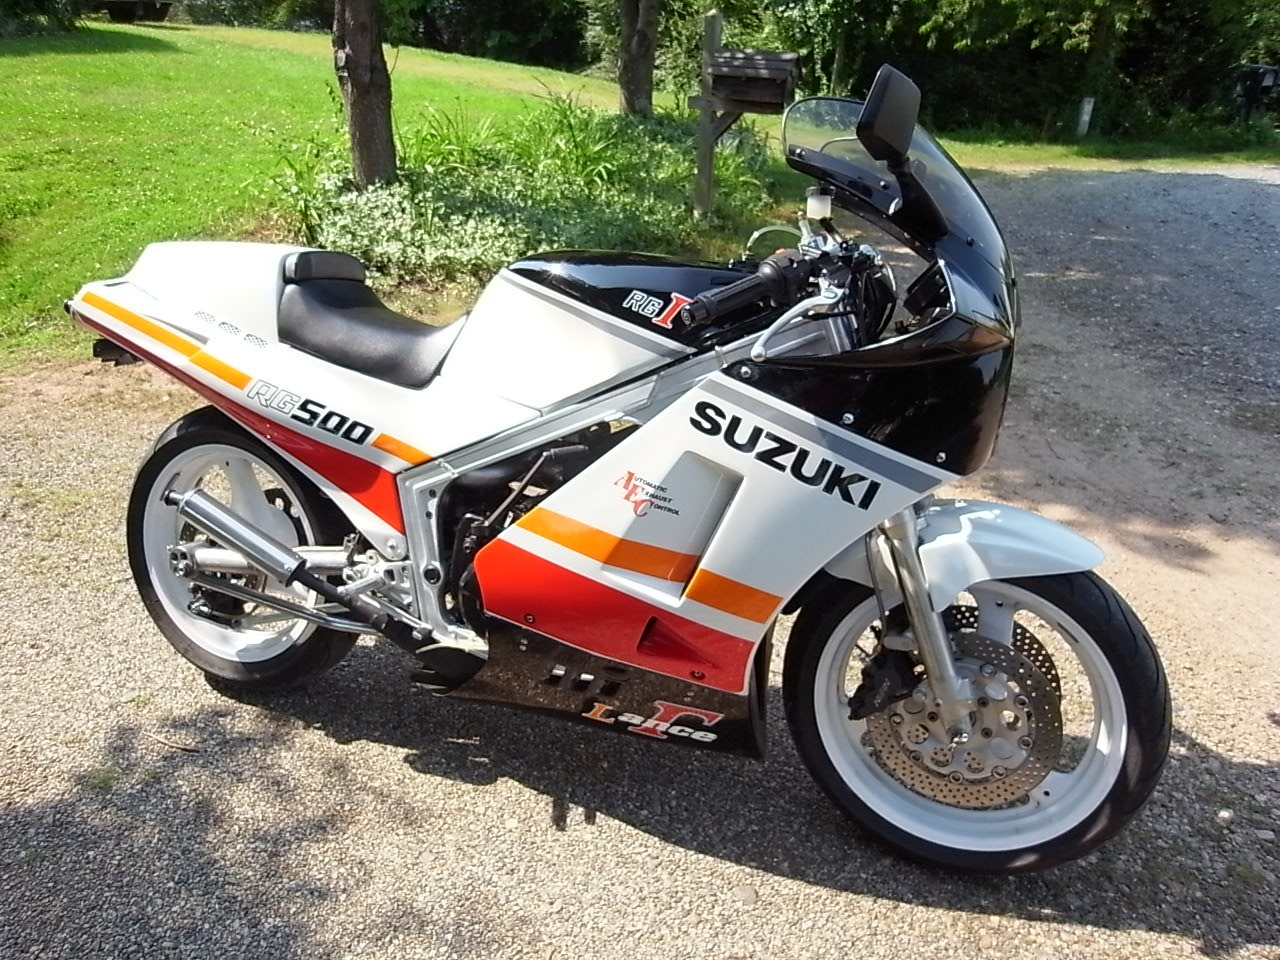 lance gamma bike 1986 suzuki rg500 for sale rare sportbikes for sale. Black Bedroom Furniture Sets. Home Design Ideas